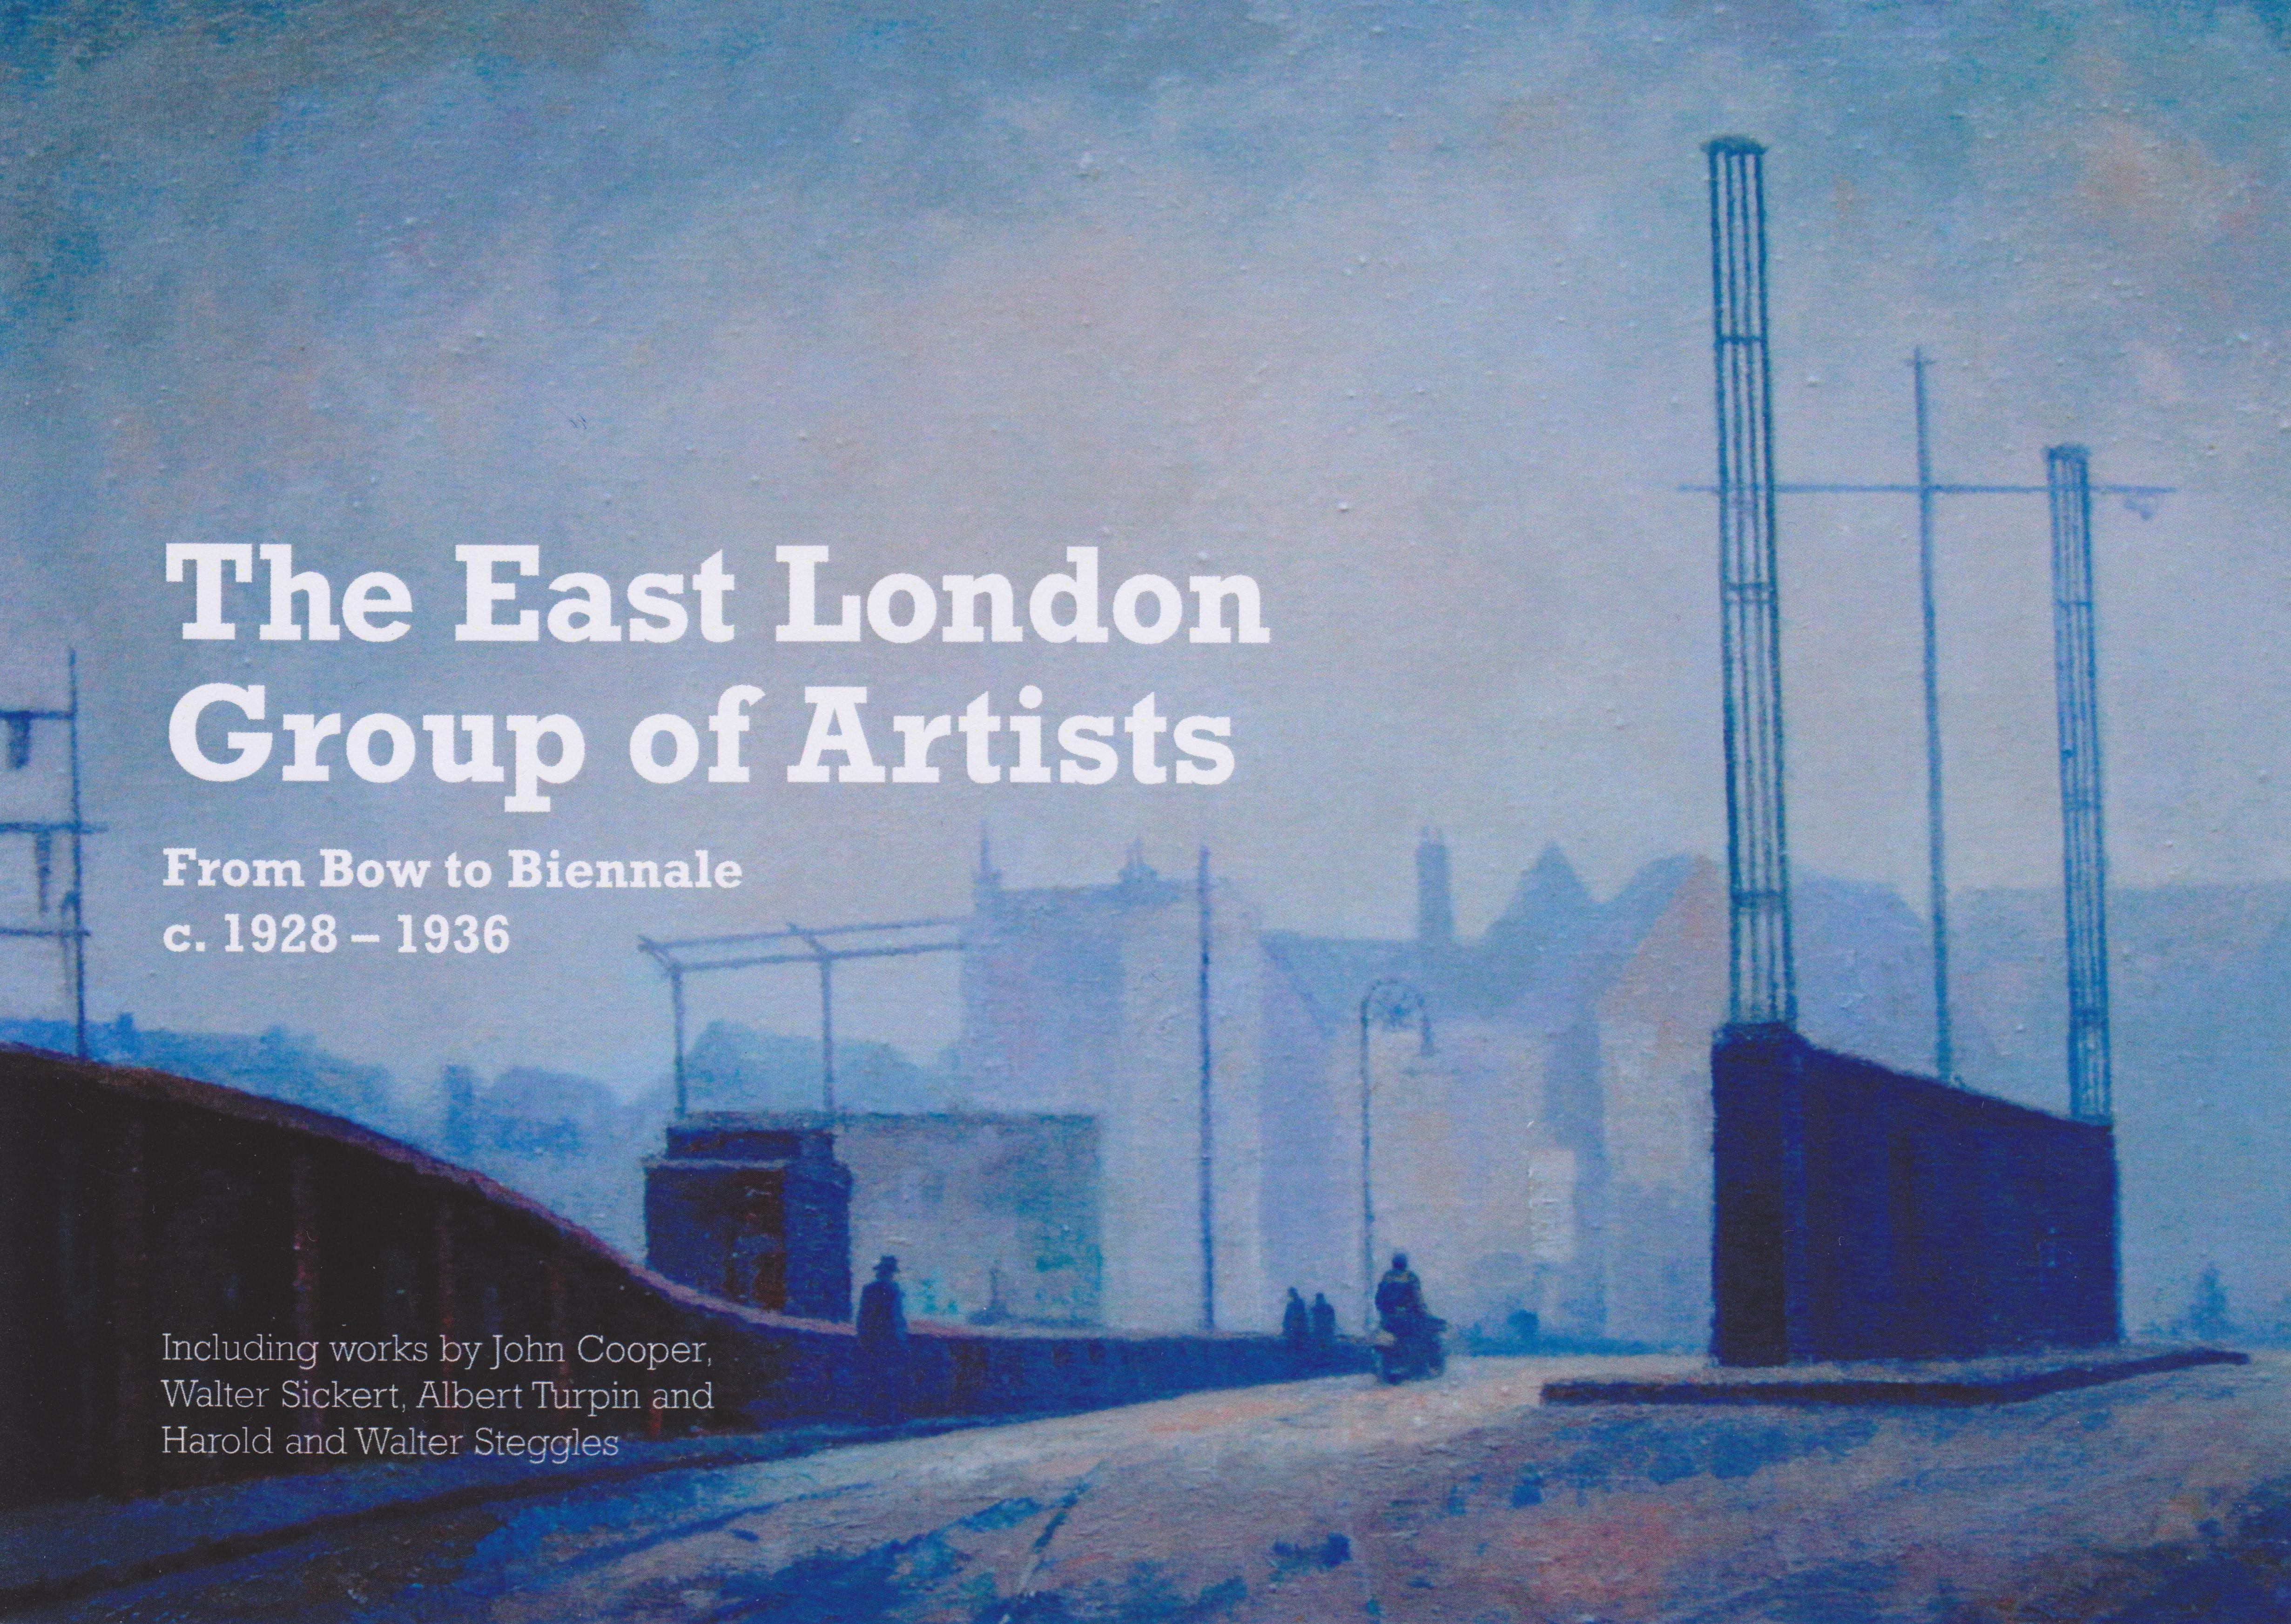 The East London Group of Artists